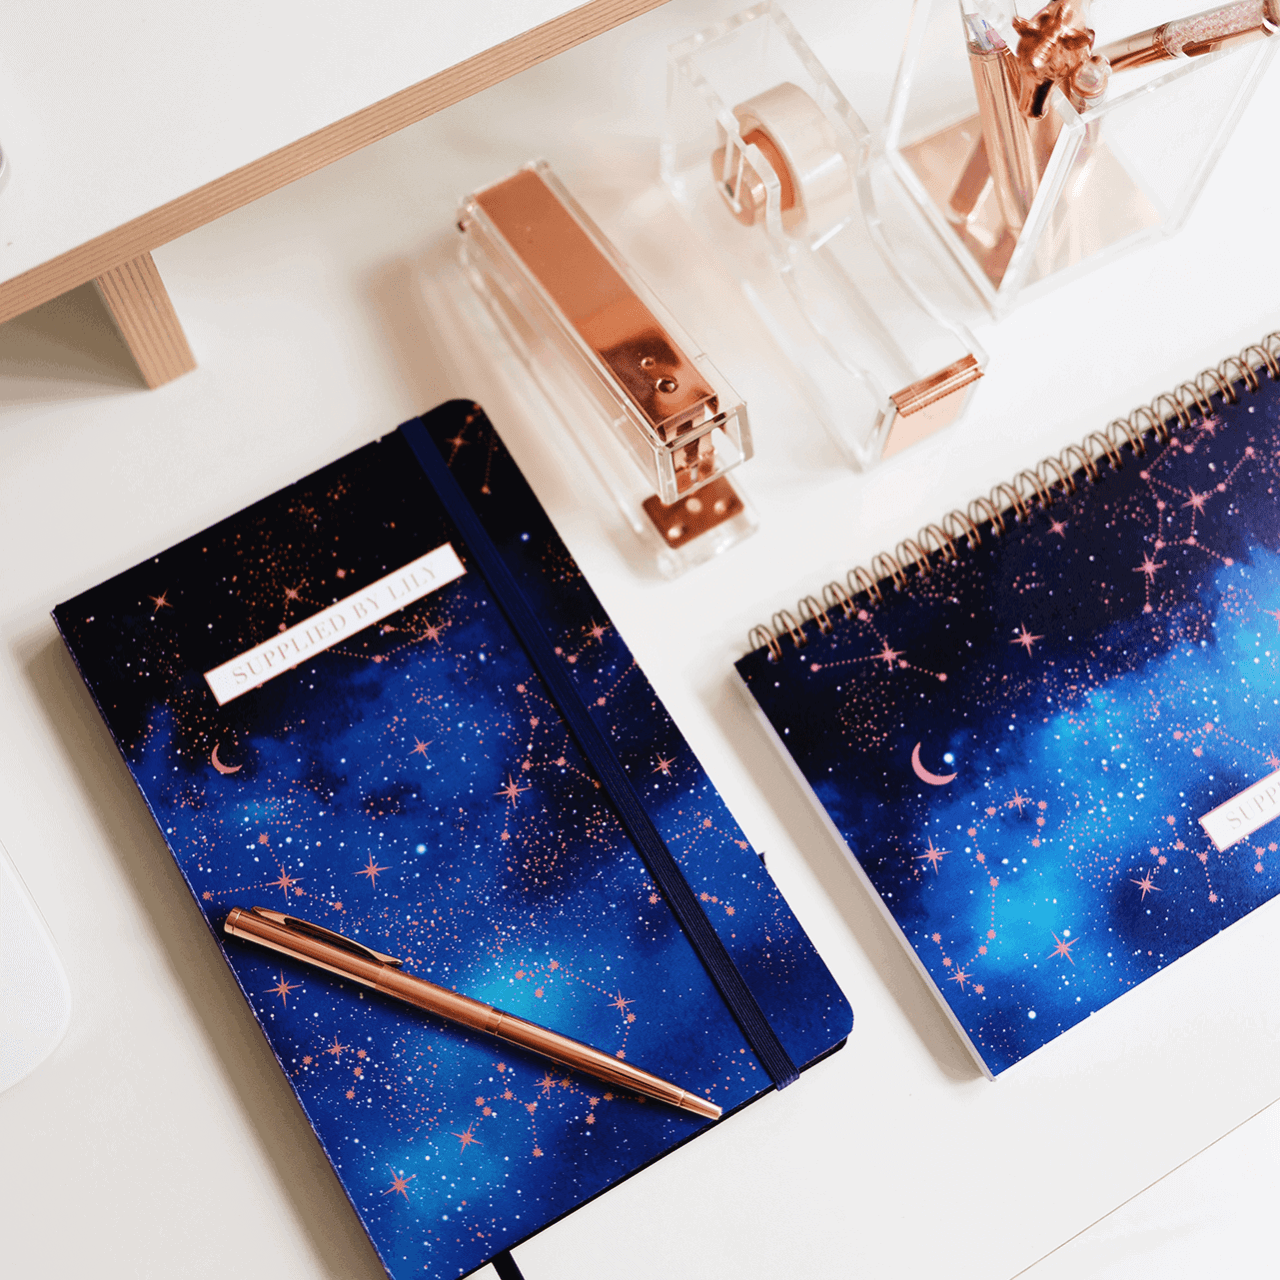 Classic Notebook in Luxurious Astrology (Limited Edition)